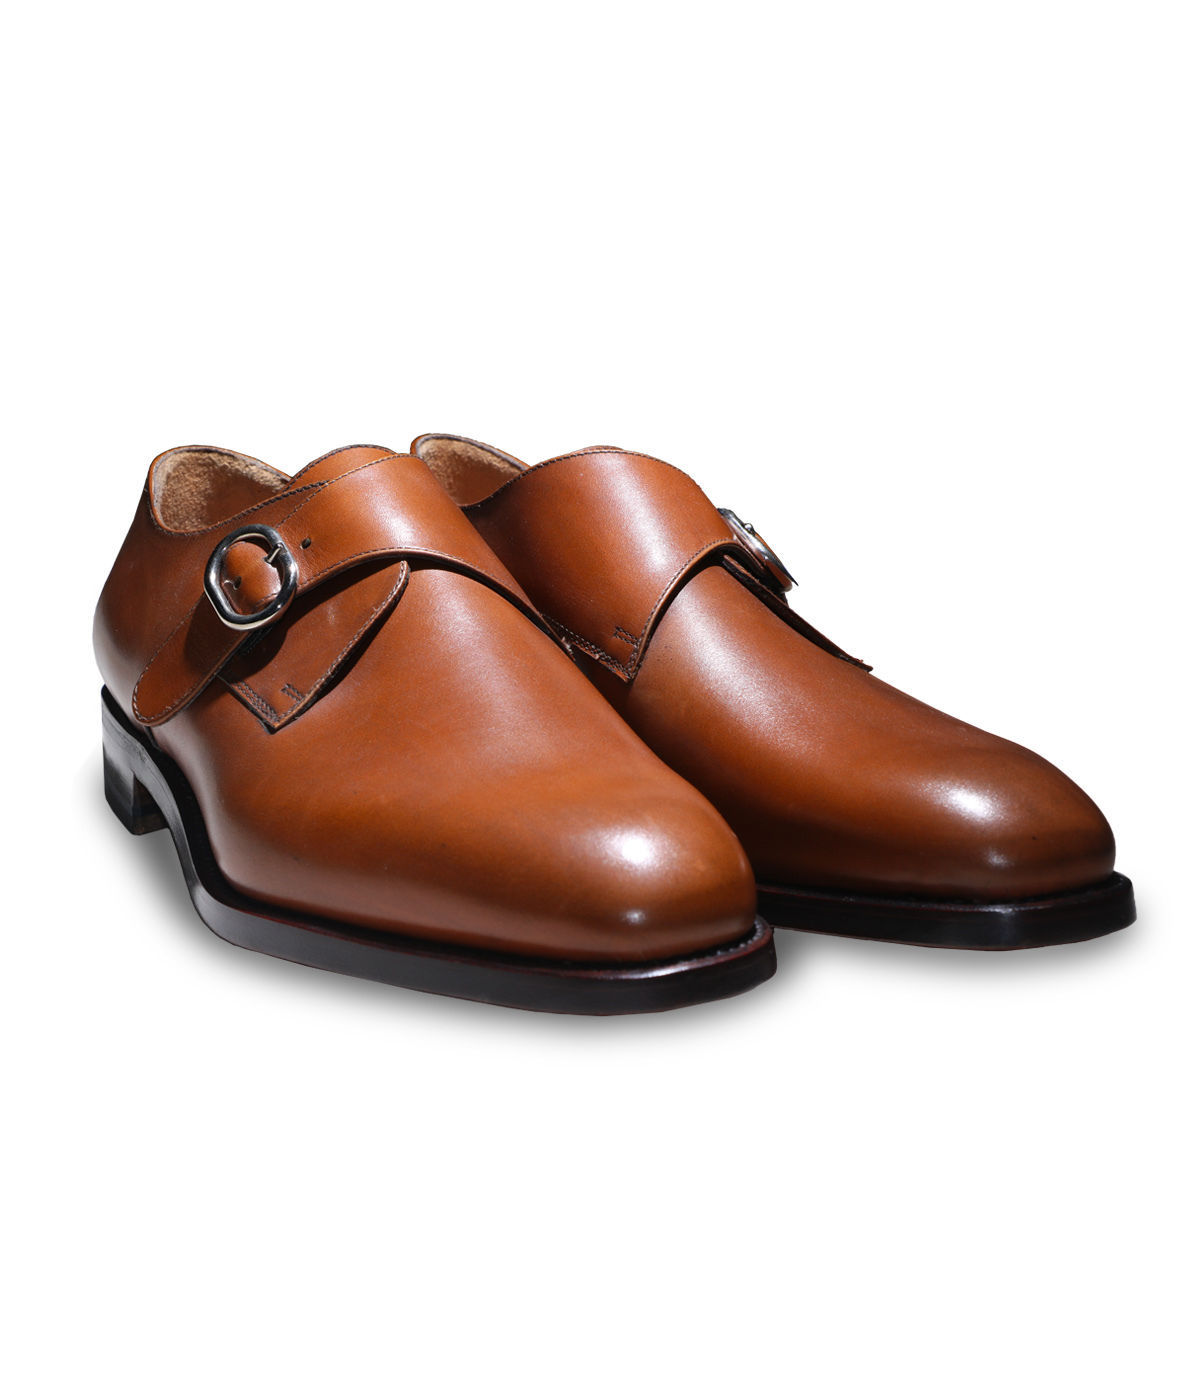 4e806c8acfb91 Moreschi Men's Calf Leather Brown Monk Strap and 50 similar items